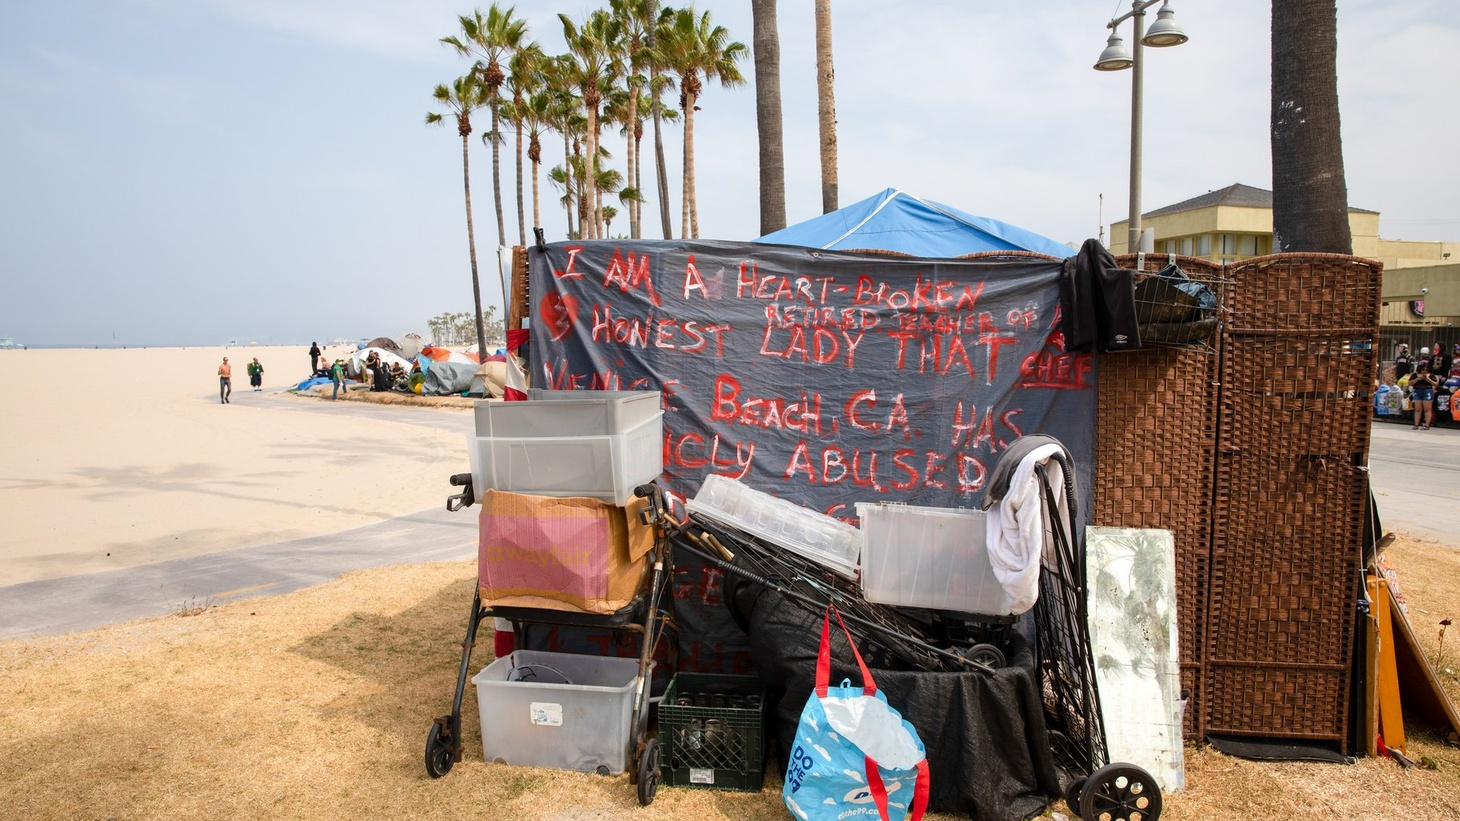 """Along the Venice boardwalk, a tent reads, """"I am a heartbroken retired teacher and chef. Honest lady that Venice Beach, CA, has abused."""" June 29, 2021."""